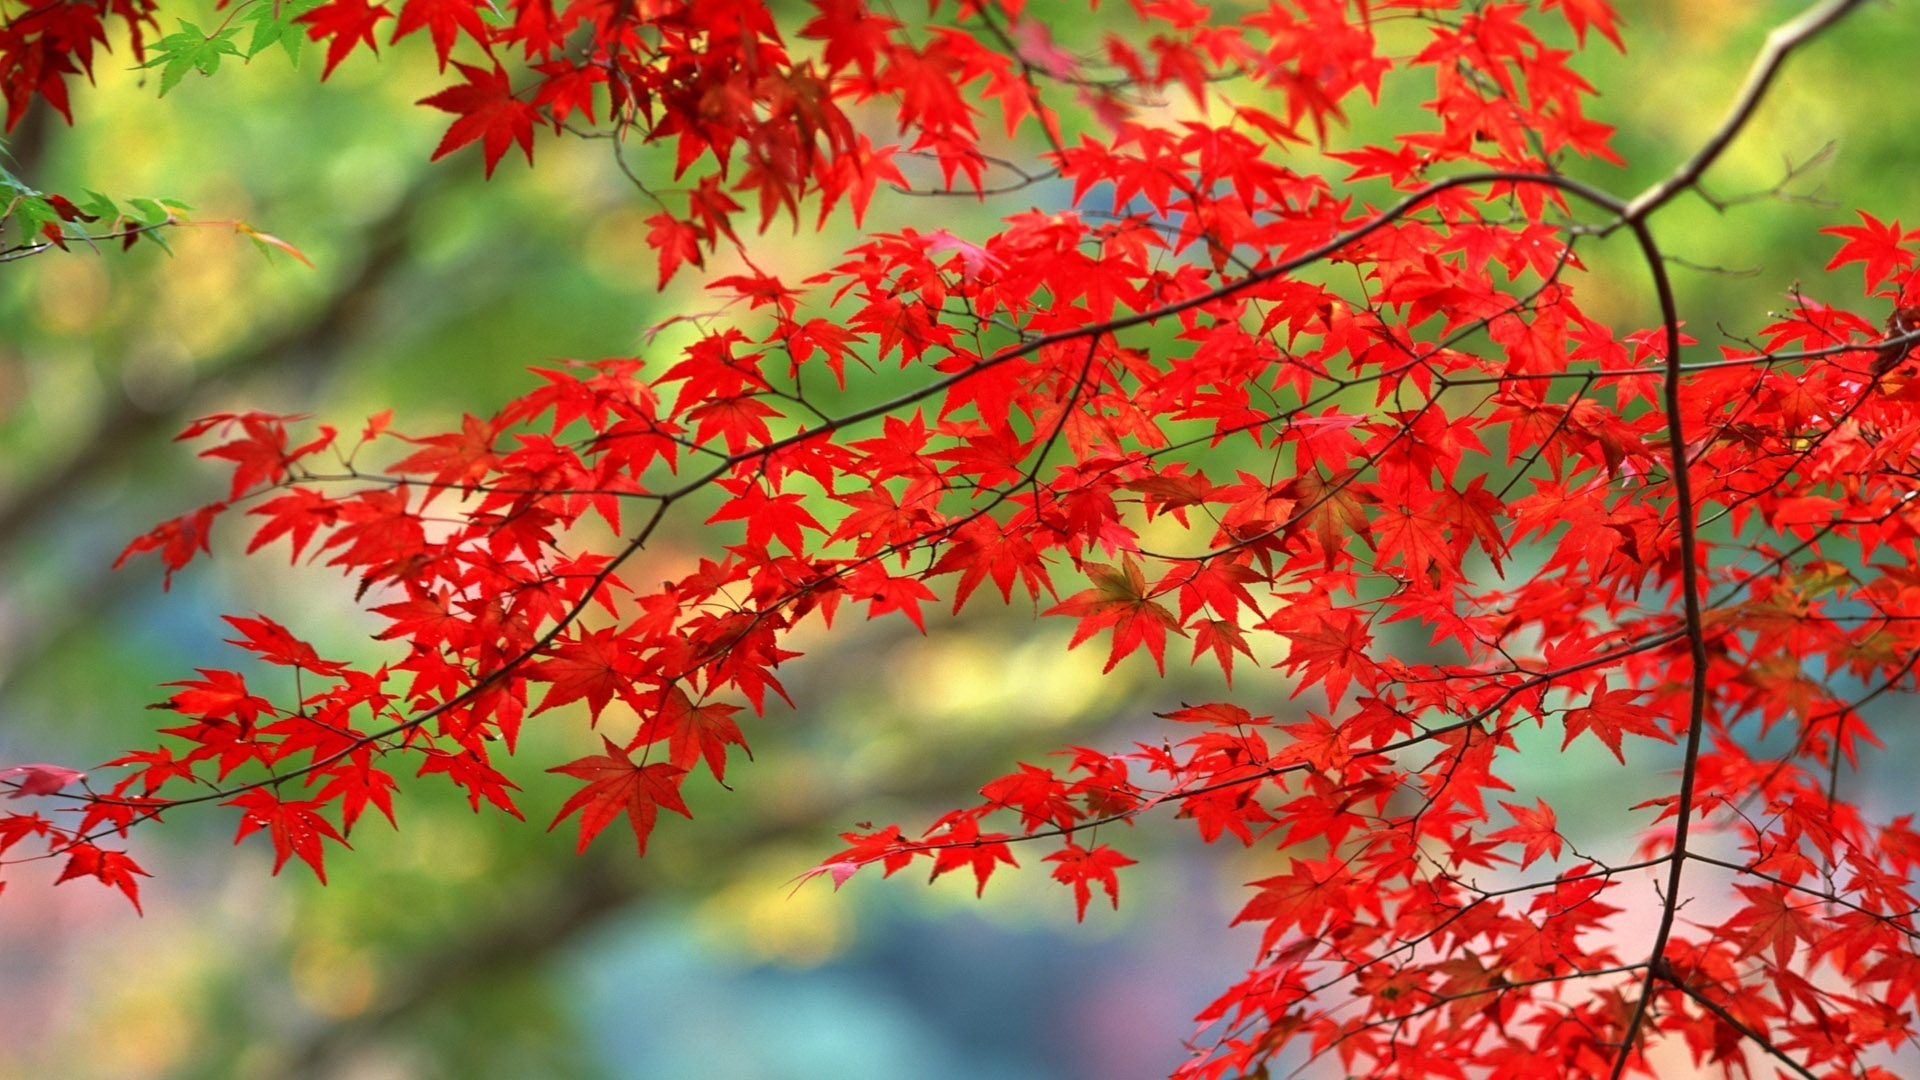 Bright-Autumn-Festival-starts-this-Friday-th-April-The-reds-are-looking-gorgeous-http-ww-wallpaper-wpc5803054